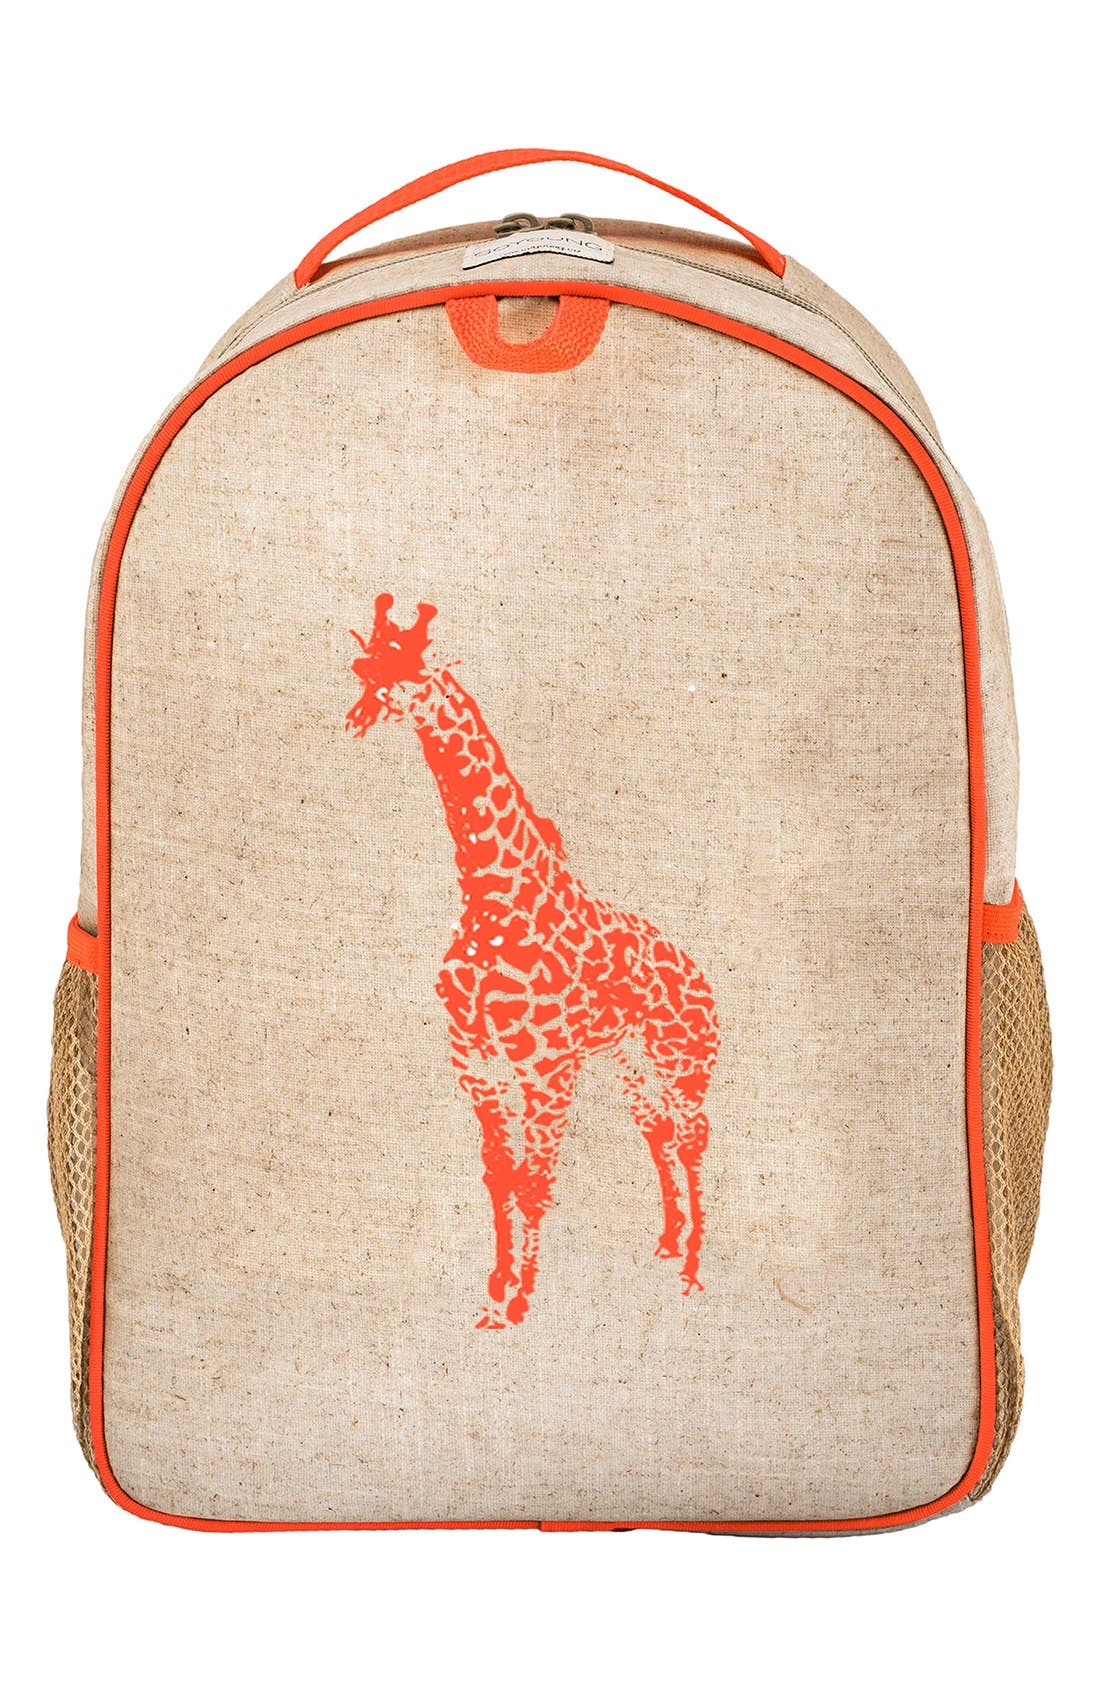 Alternate Image 1 Selected - SoYoung Linen & Cotton Backpack (Kids)